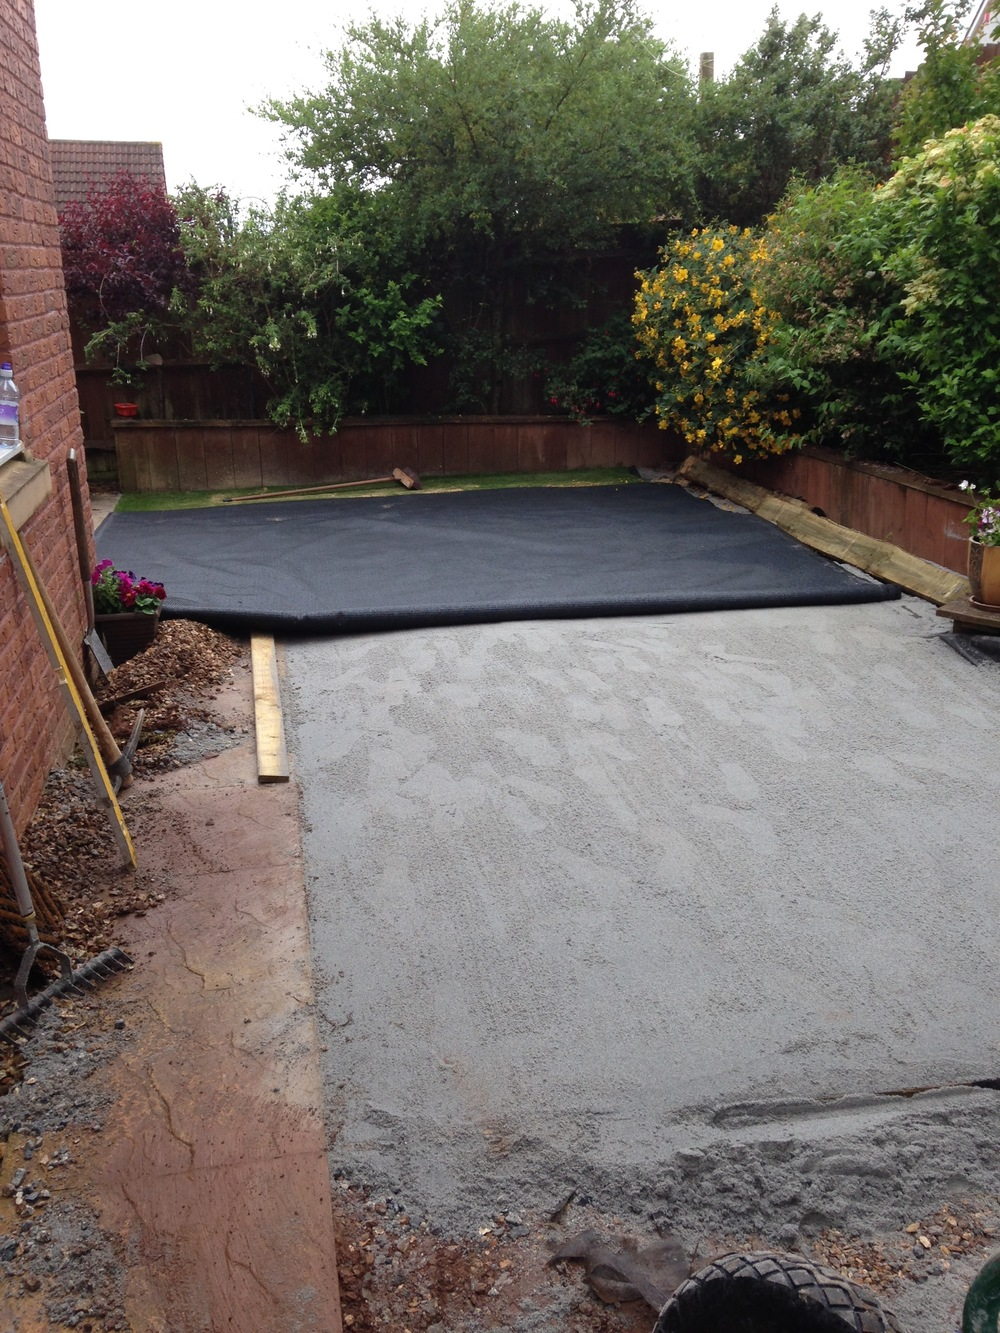 Artificial turf for the kids